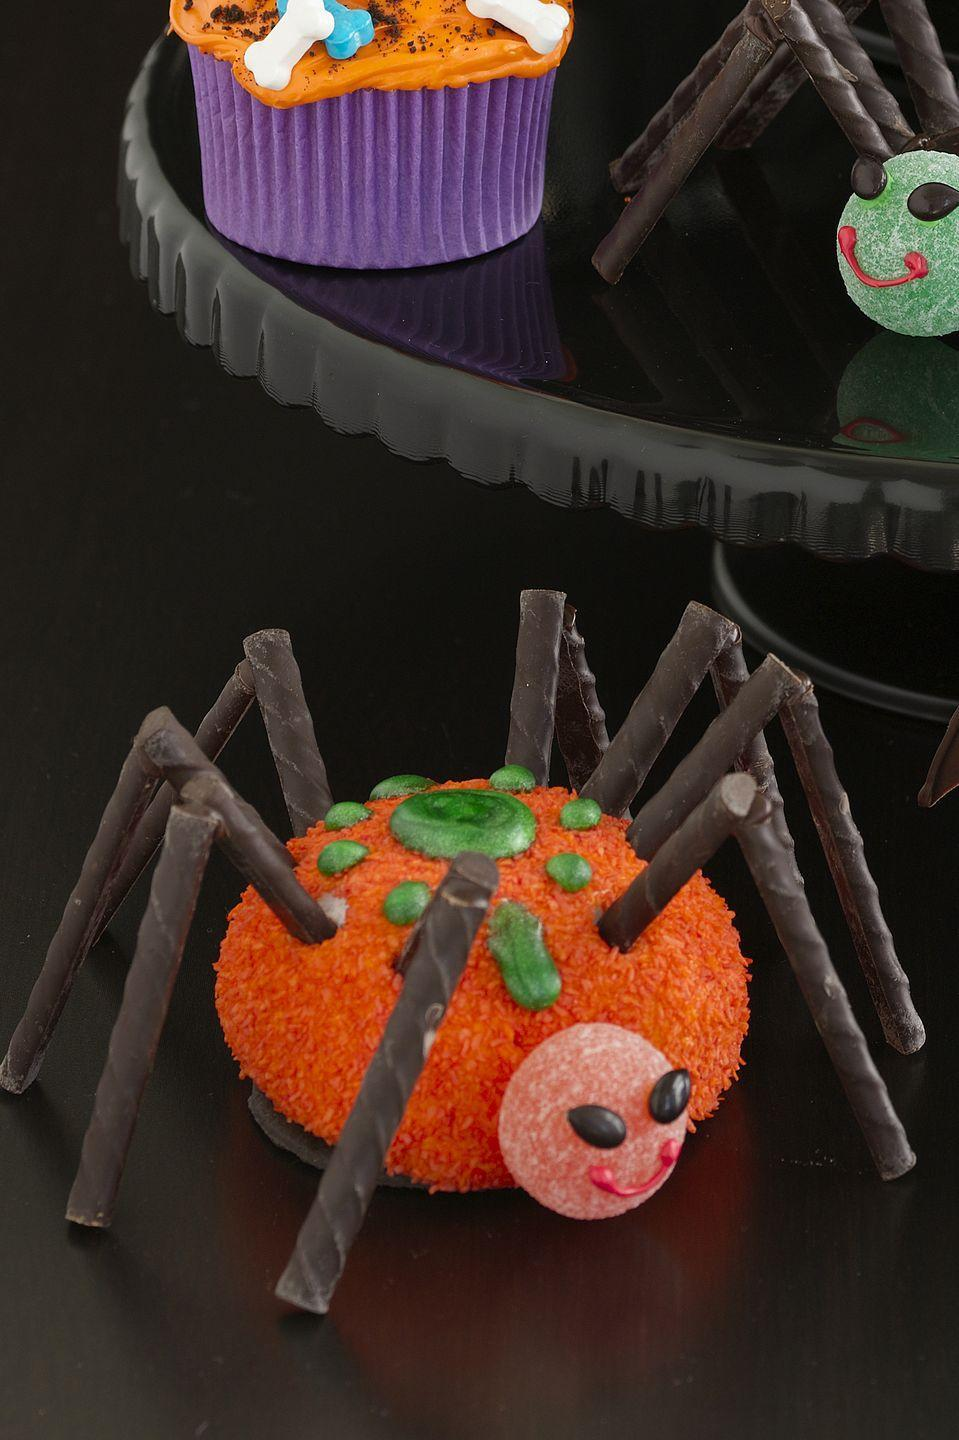 """<p>Not quite a cupcake: This recipe calls for Sno Balls to be decorated with chocolate sticks, Candy Melts, and frosting.</p><p><em><a href=""""https://www.womansday.com/food-recipes/food-drinks/recipes/a10888/large-sno-ball-spiders-122196/"""" rel=""""nofollow noopener"""" target=""""_blank"""" data-ylk=""""slk:Get the Large Sno Ball Spider recipe."""" class=""""link rapid-noclick-resp"""">Get the Large Sno Ball Spider recipe.</a></em></p>"""